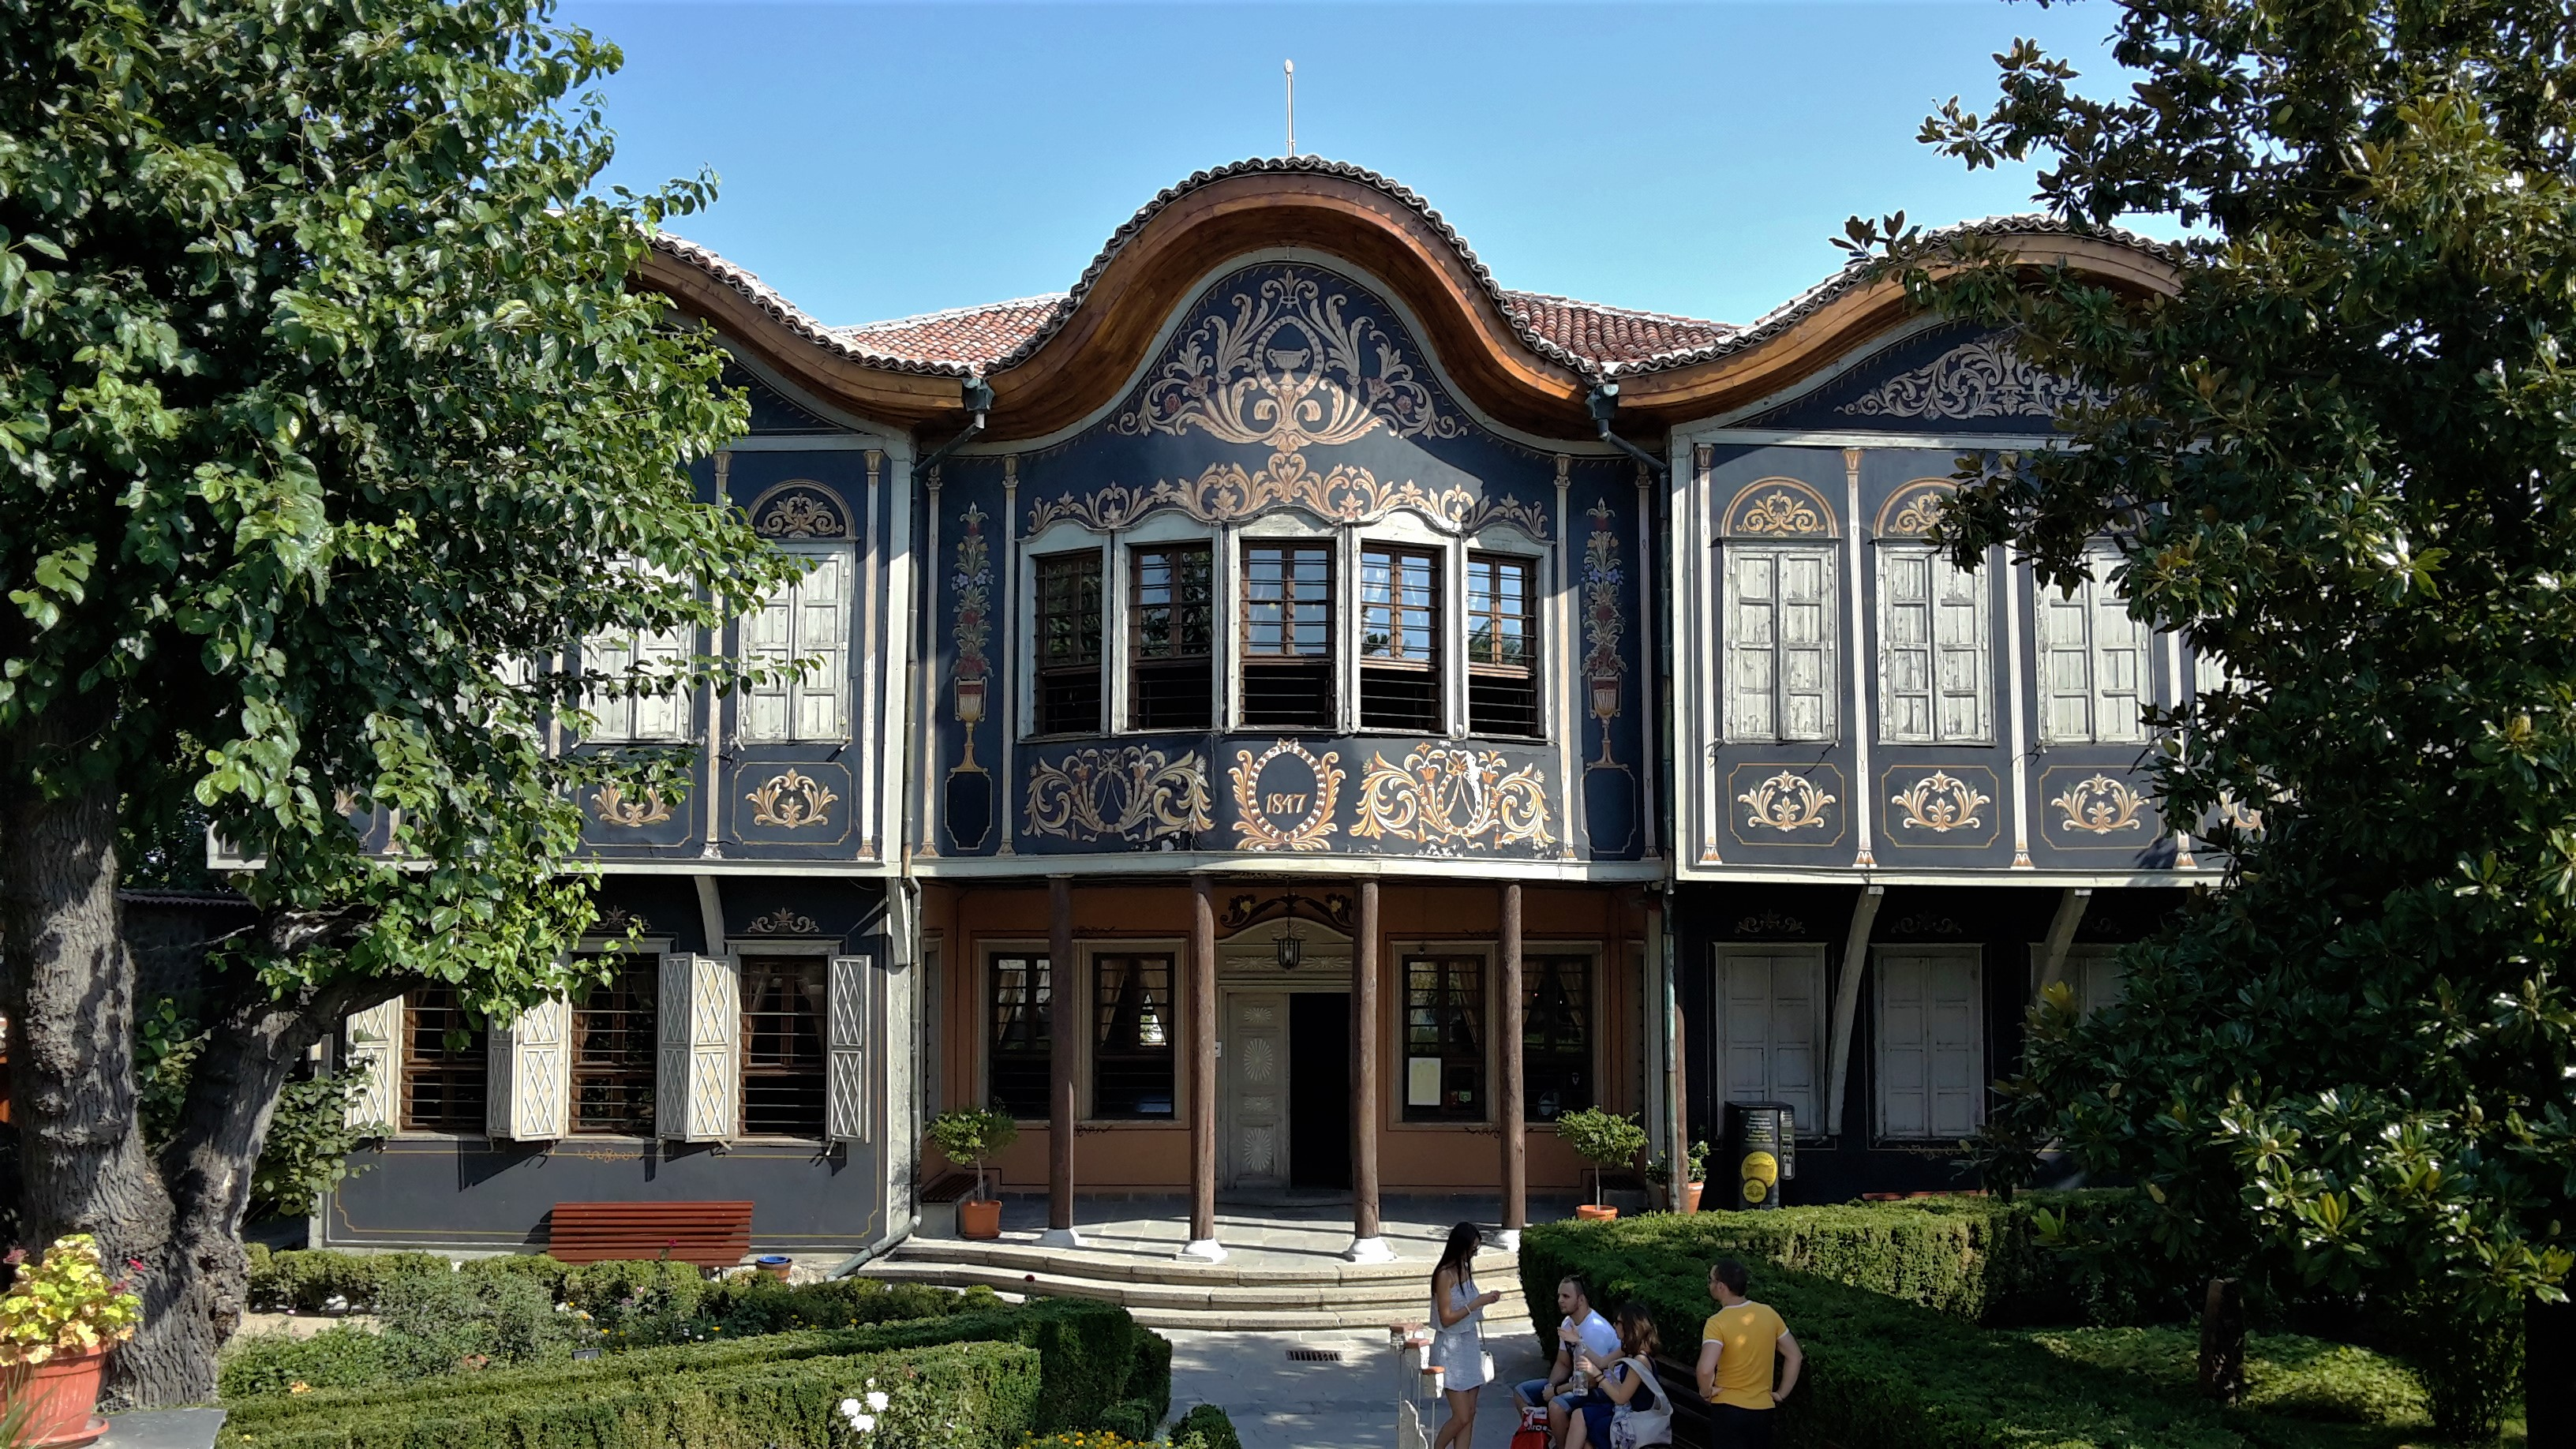 ethnographic museum, old town, picturesque, impressive facade, uniqu wood-casrved ceiling, nice yard